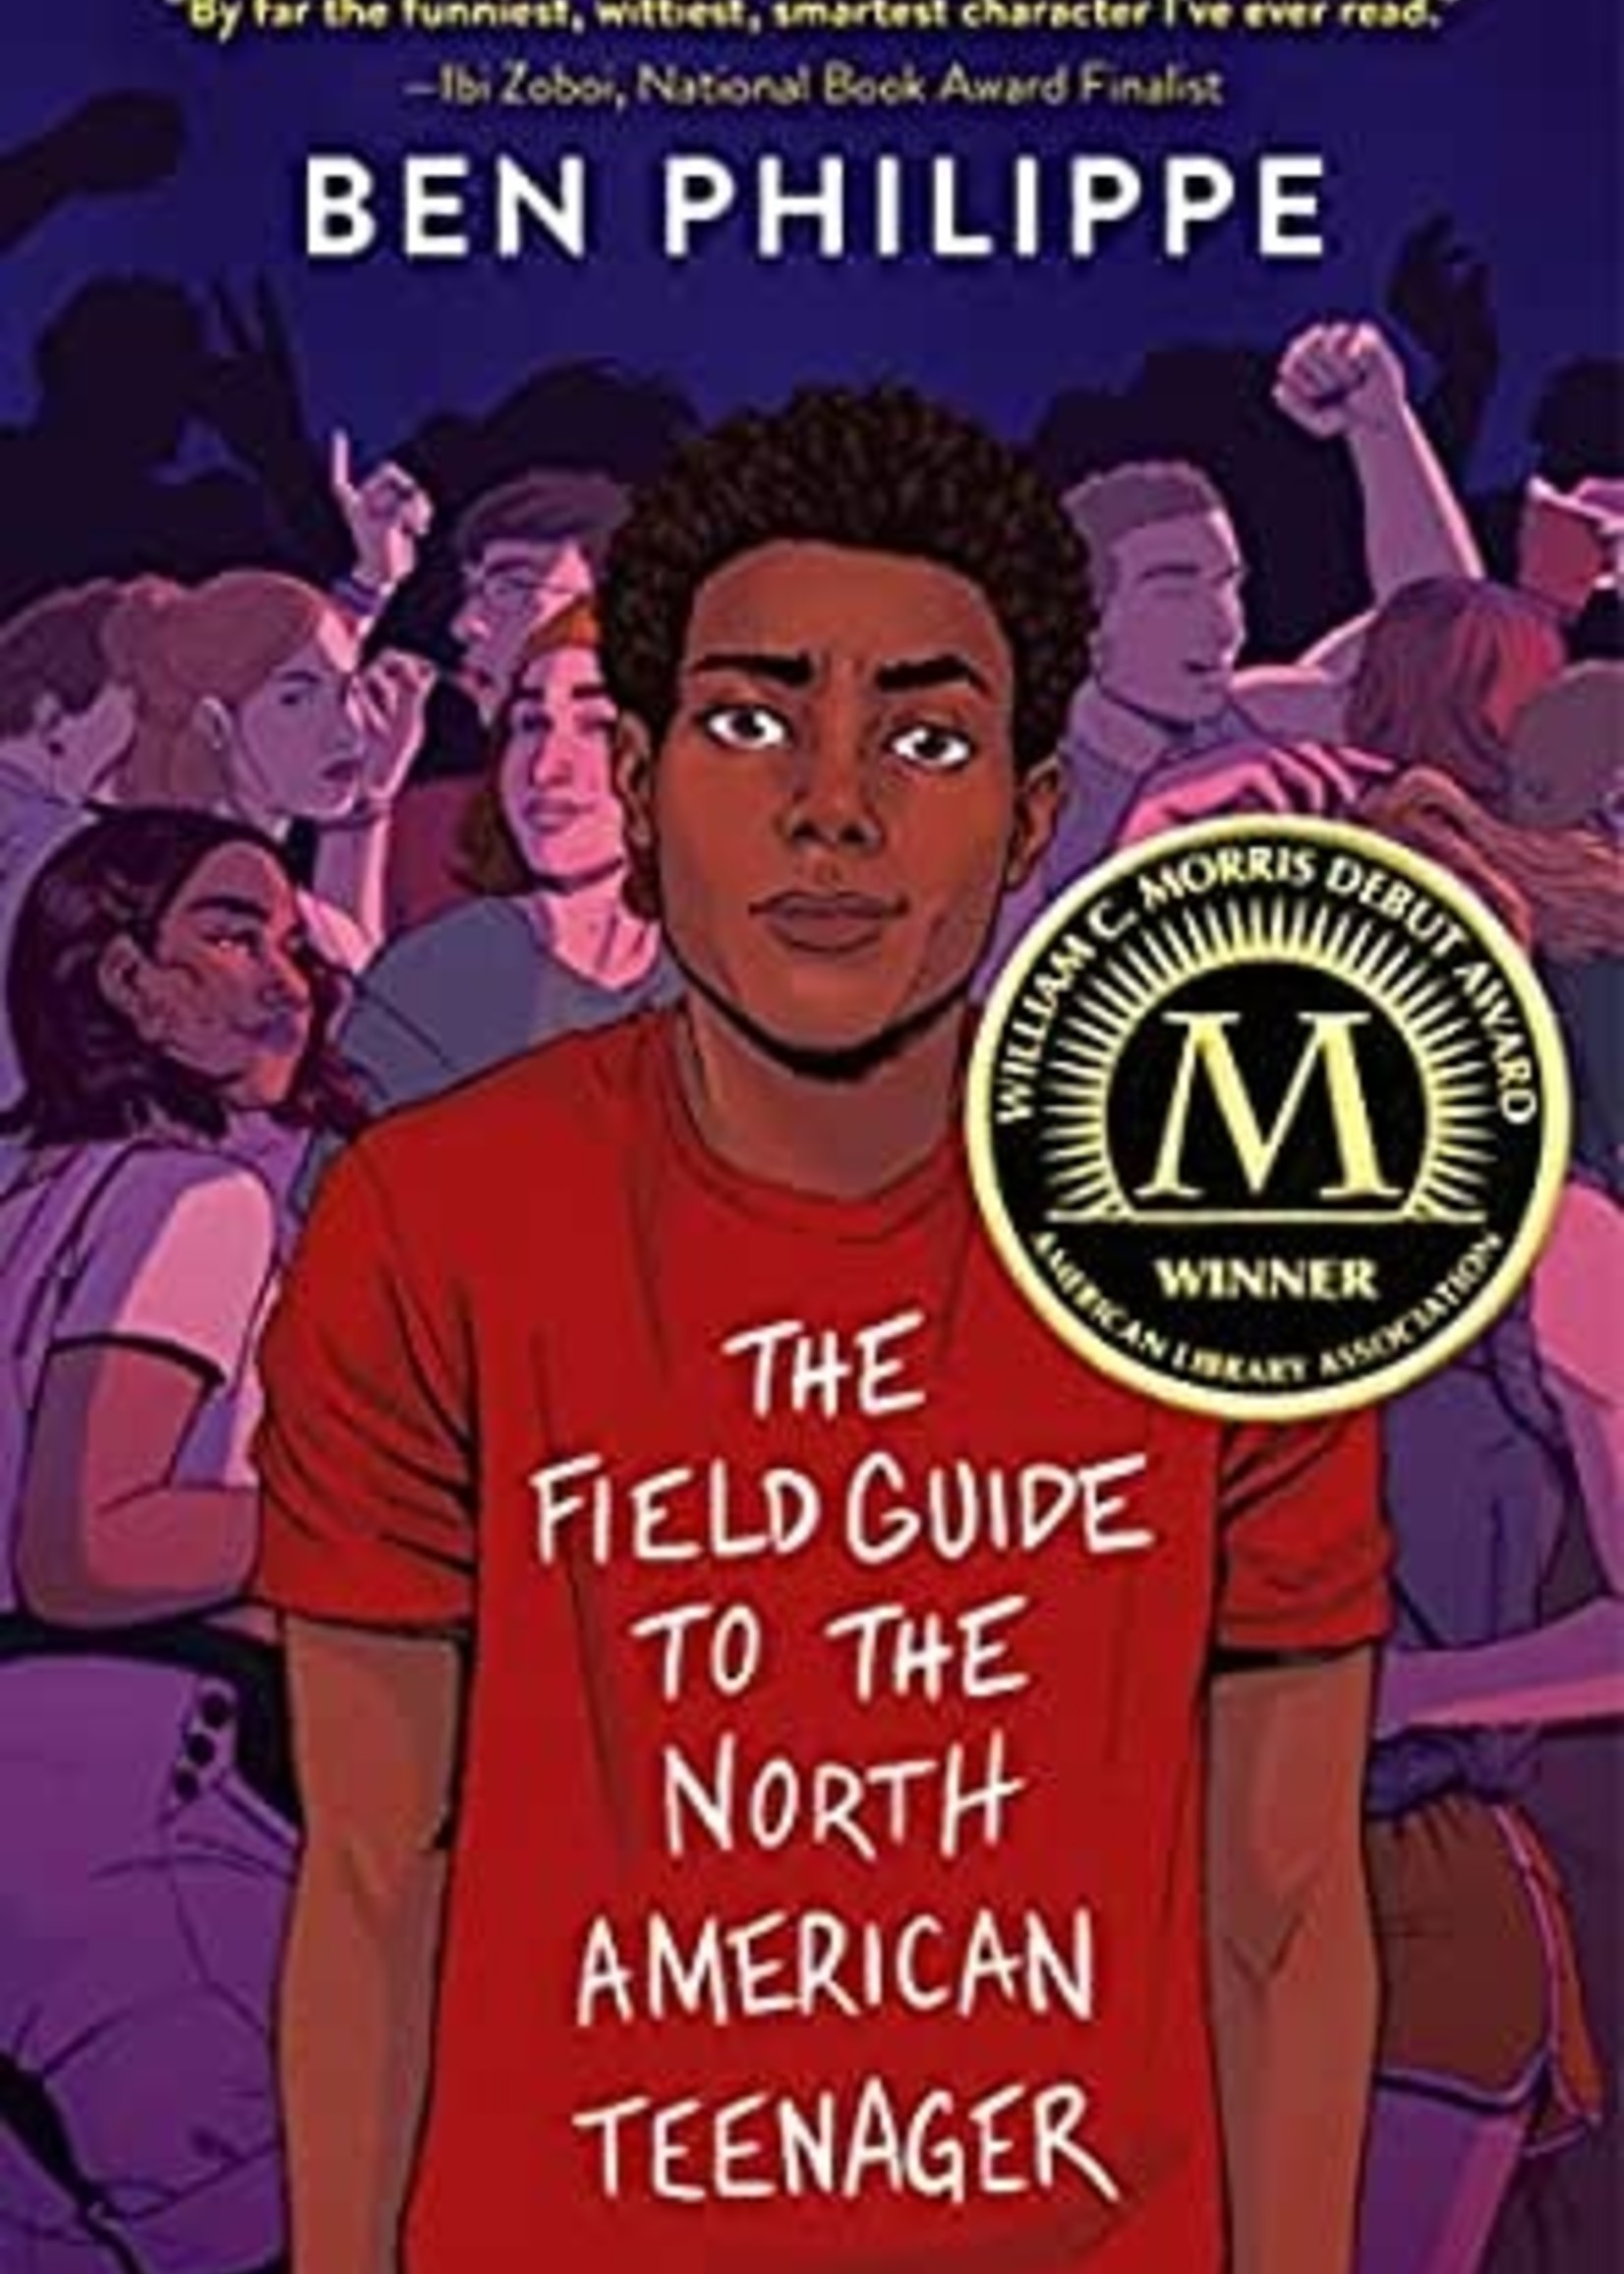 OBOB 21/22: The Field Guide to the North American Teenager - Paperback